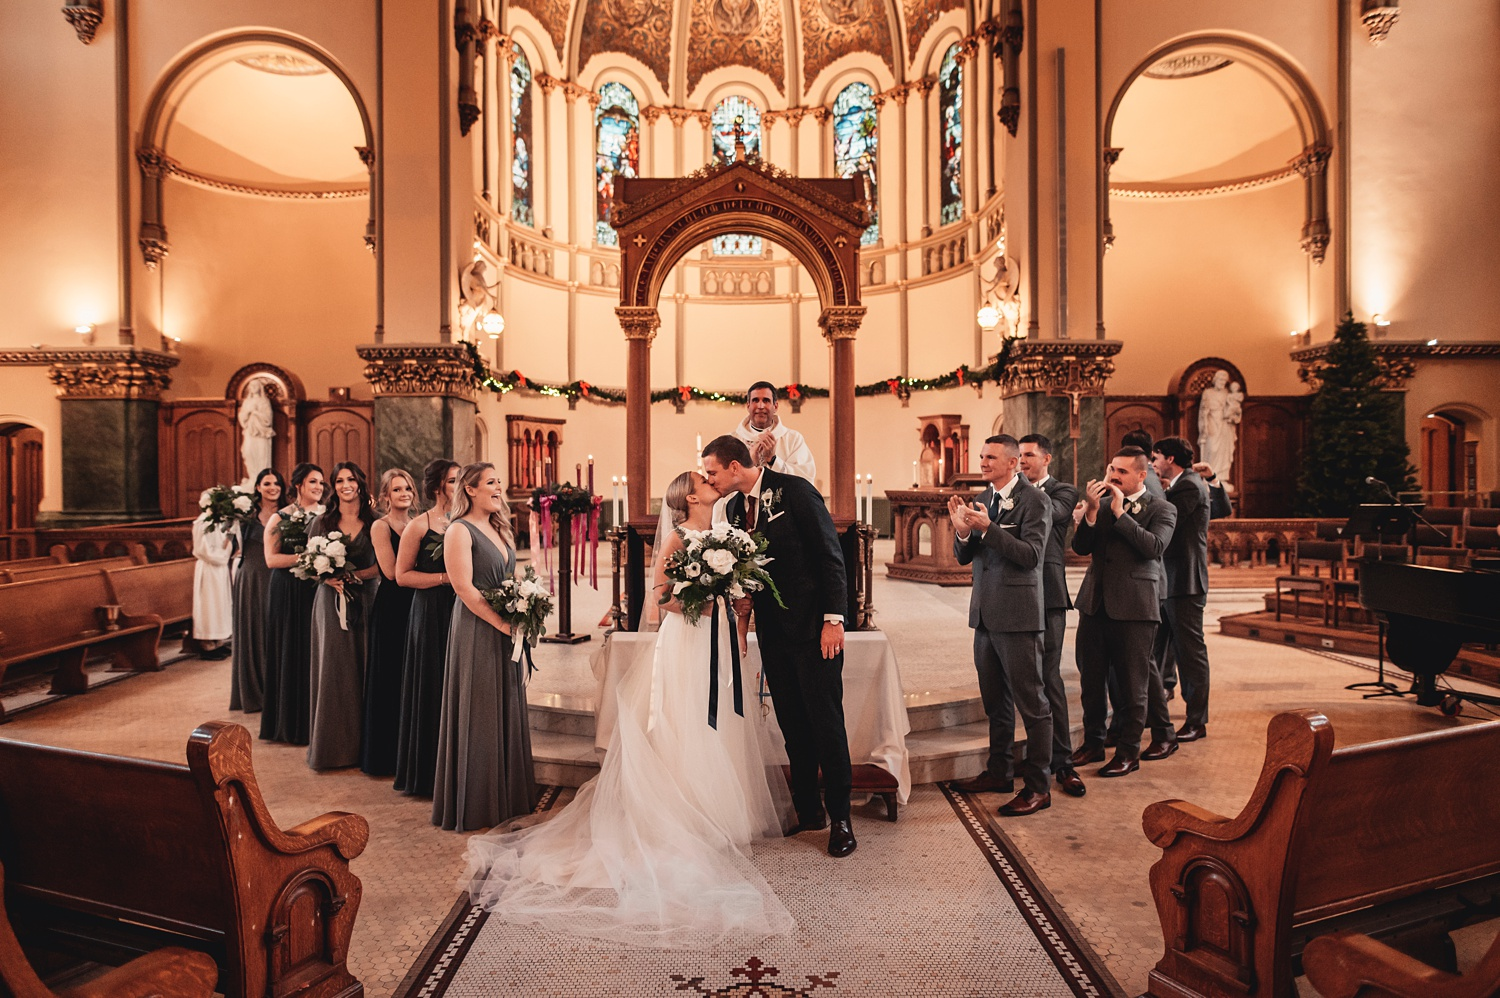 Salvatore's Chicago Wedding - St. Josaphat Catholic Church, ceremony first kiss